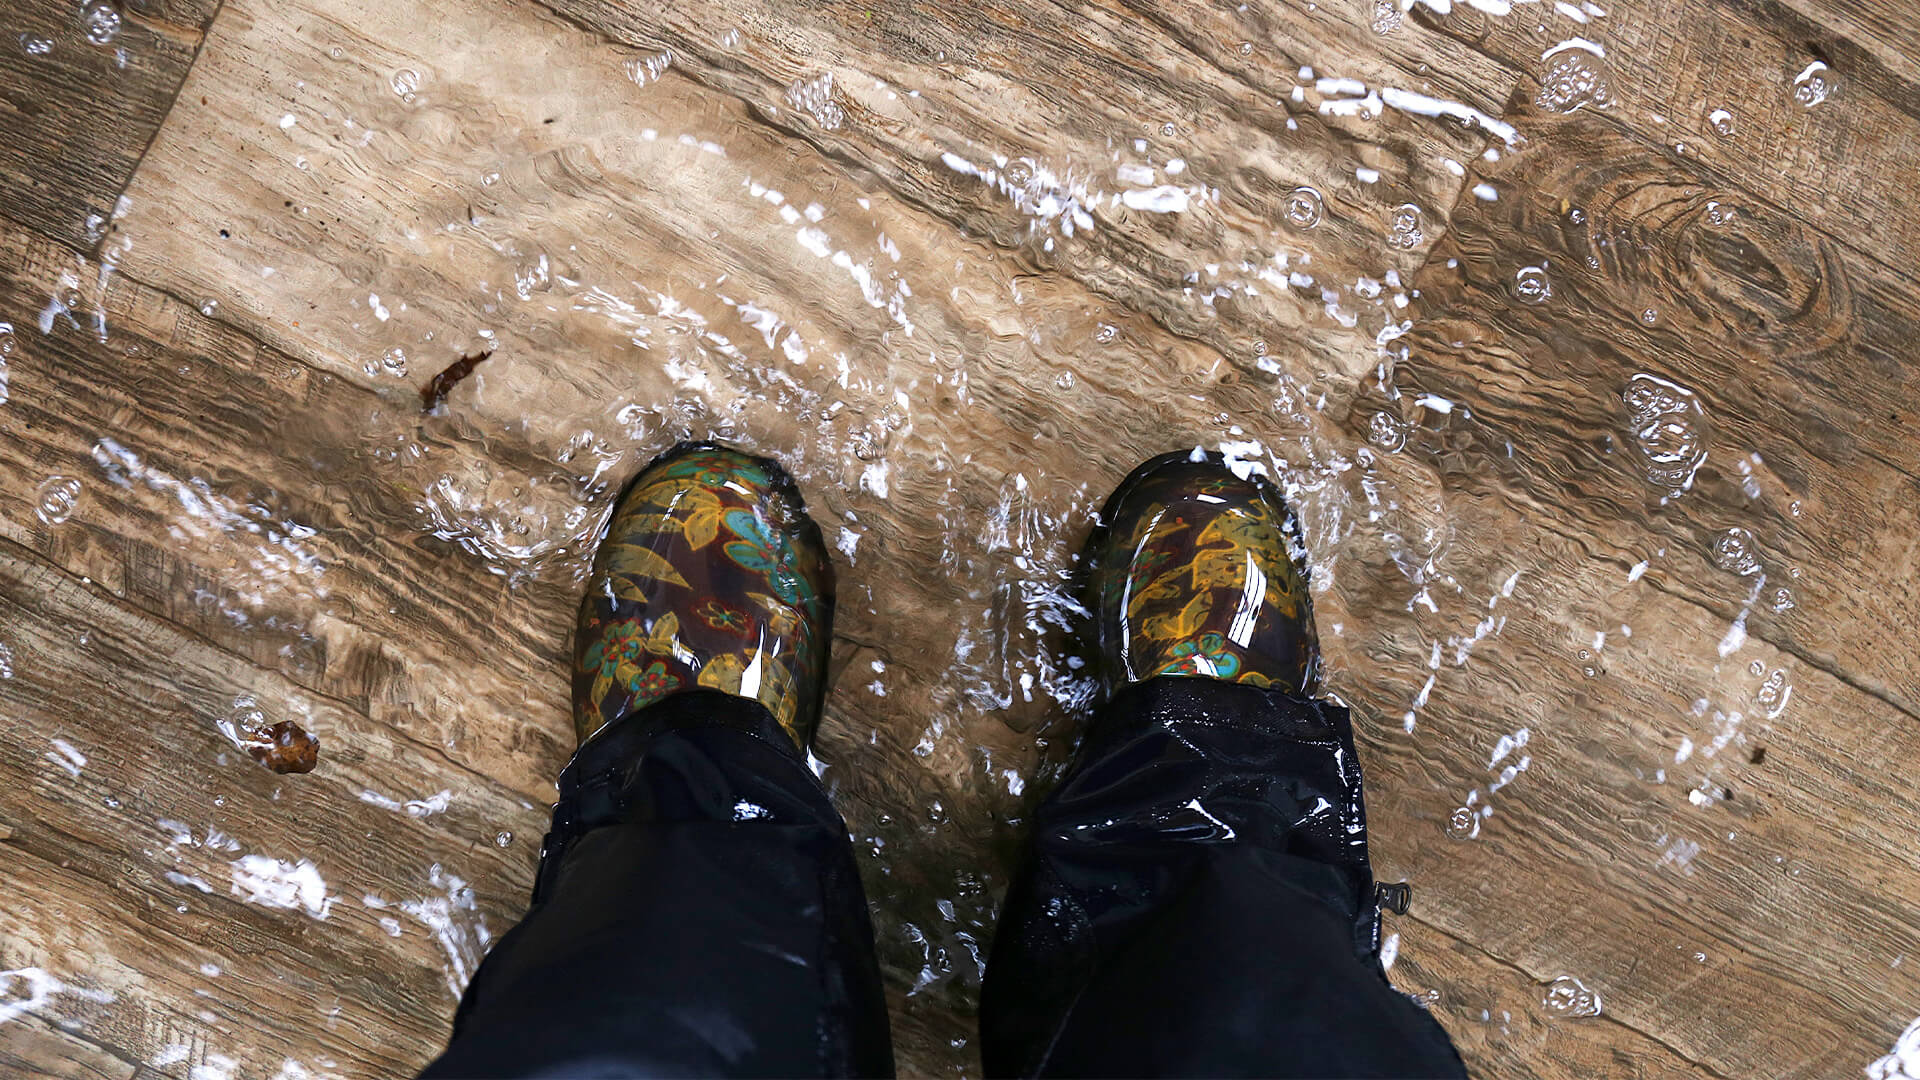 Perspective image with the camera looking at feet on a flooded wooden floor